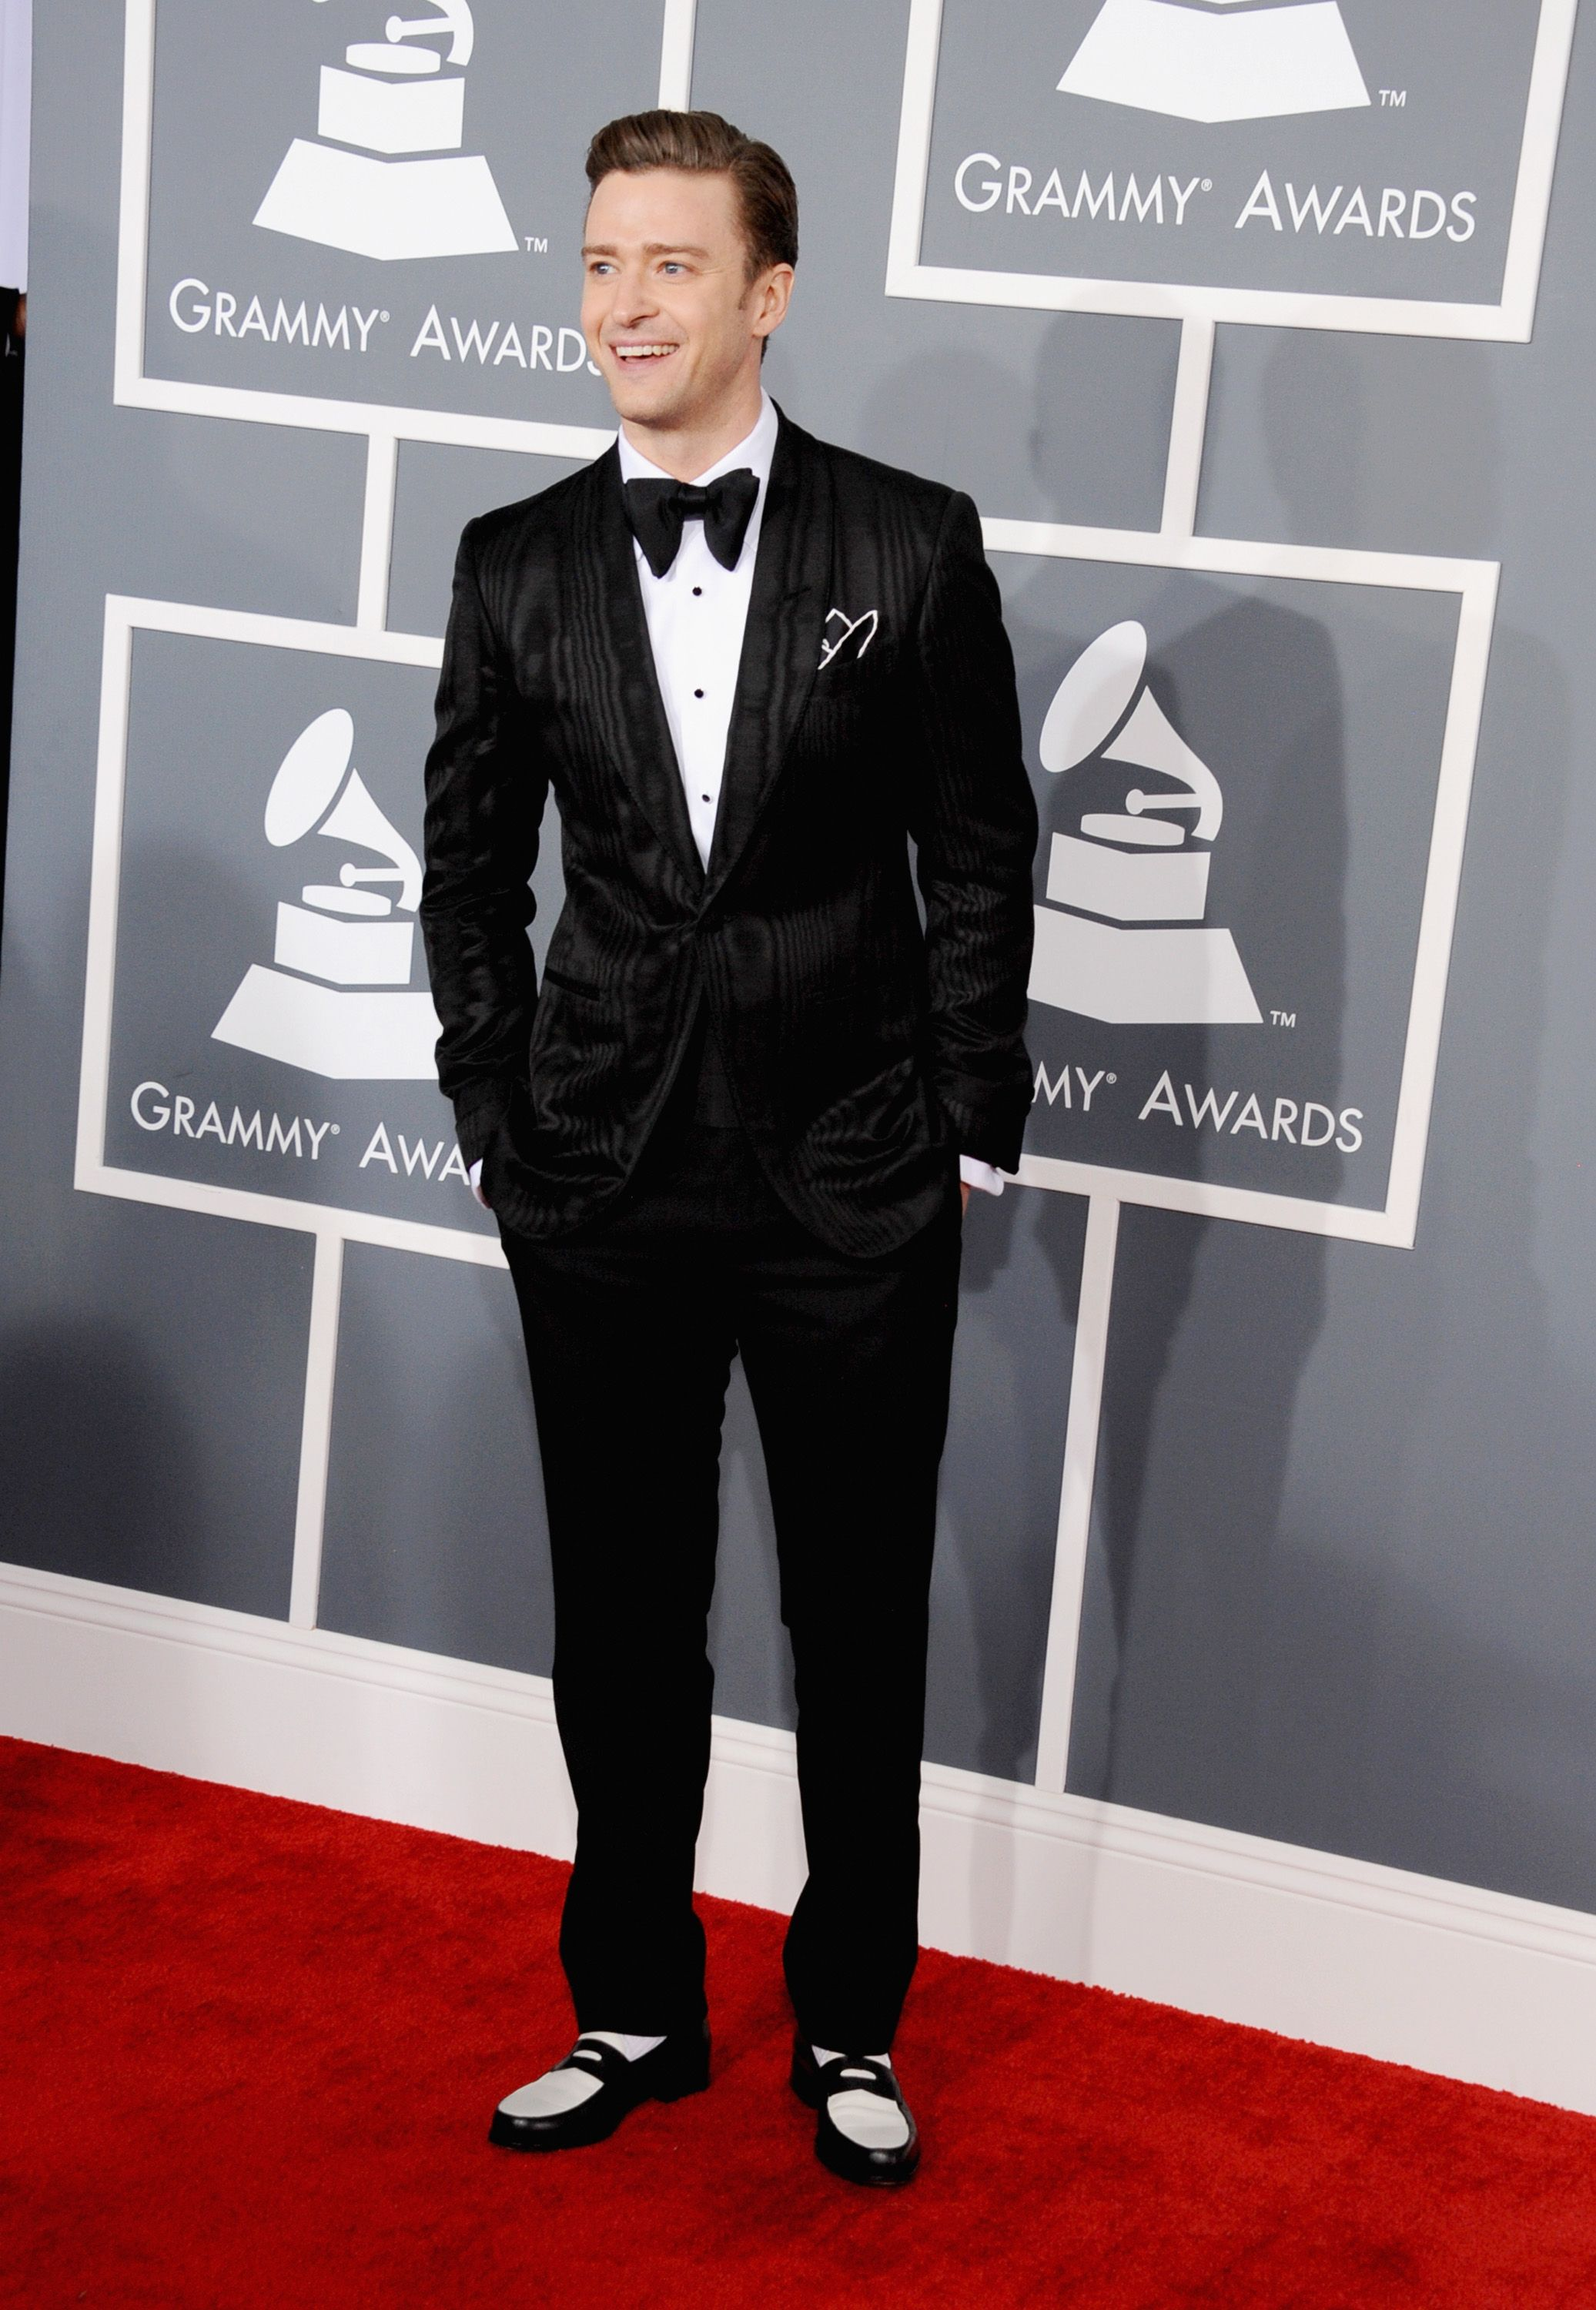 Justin Timberlake Brings His Suit and Tie to the Grammys ...